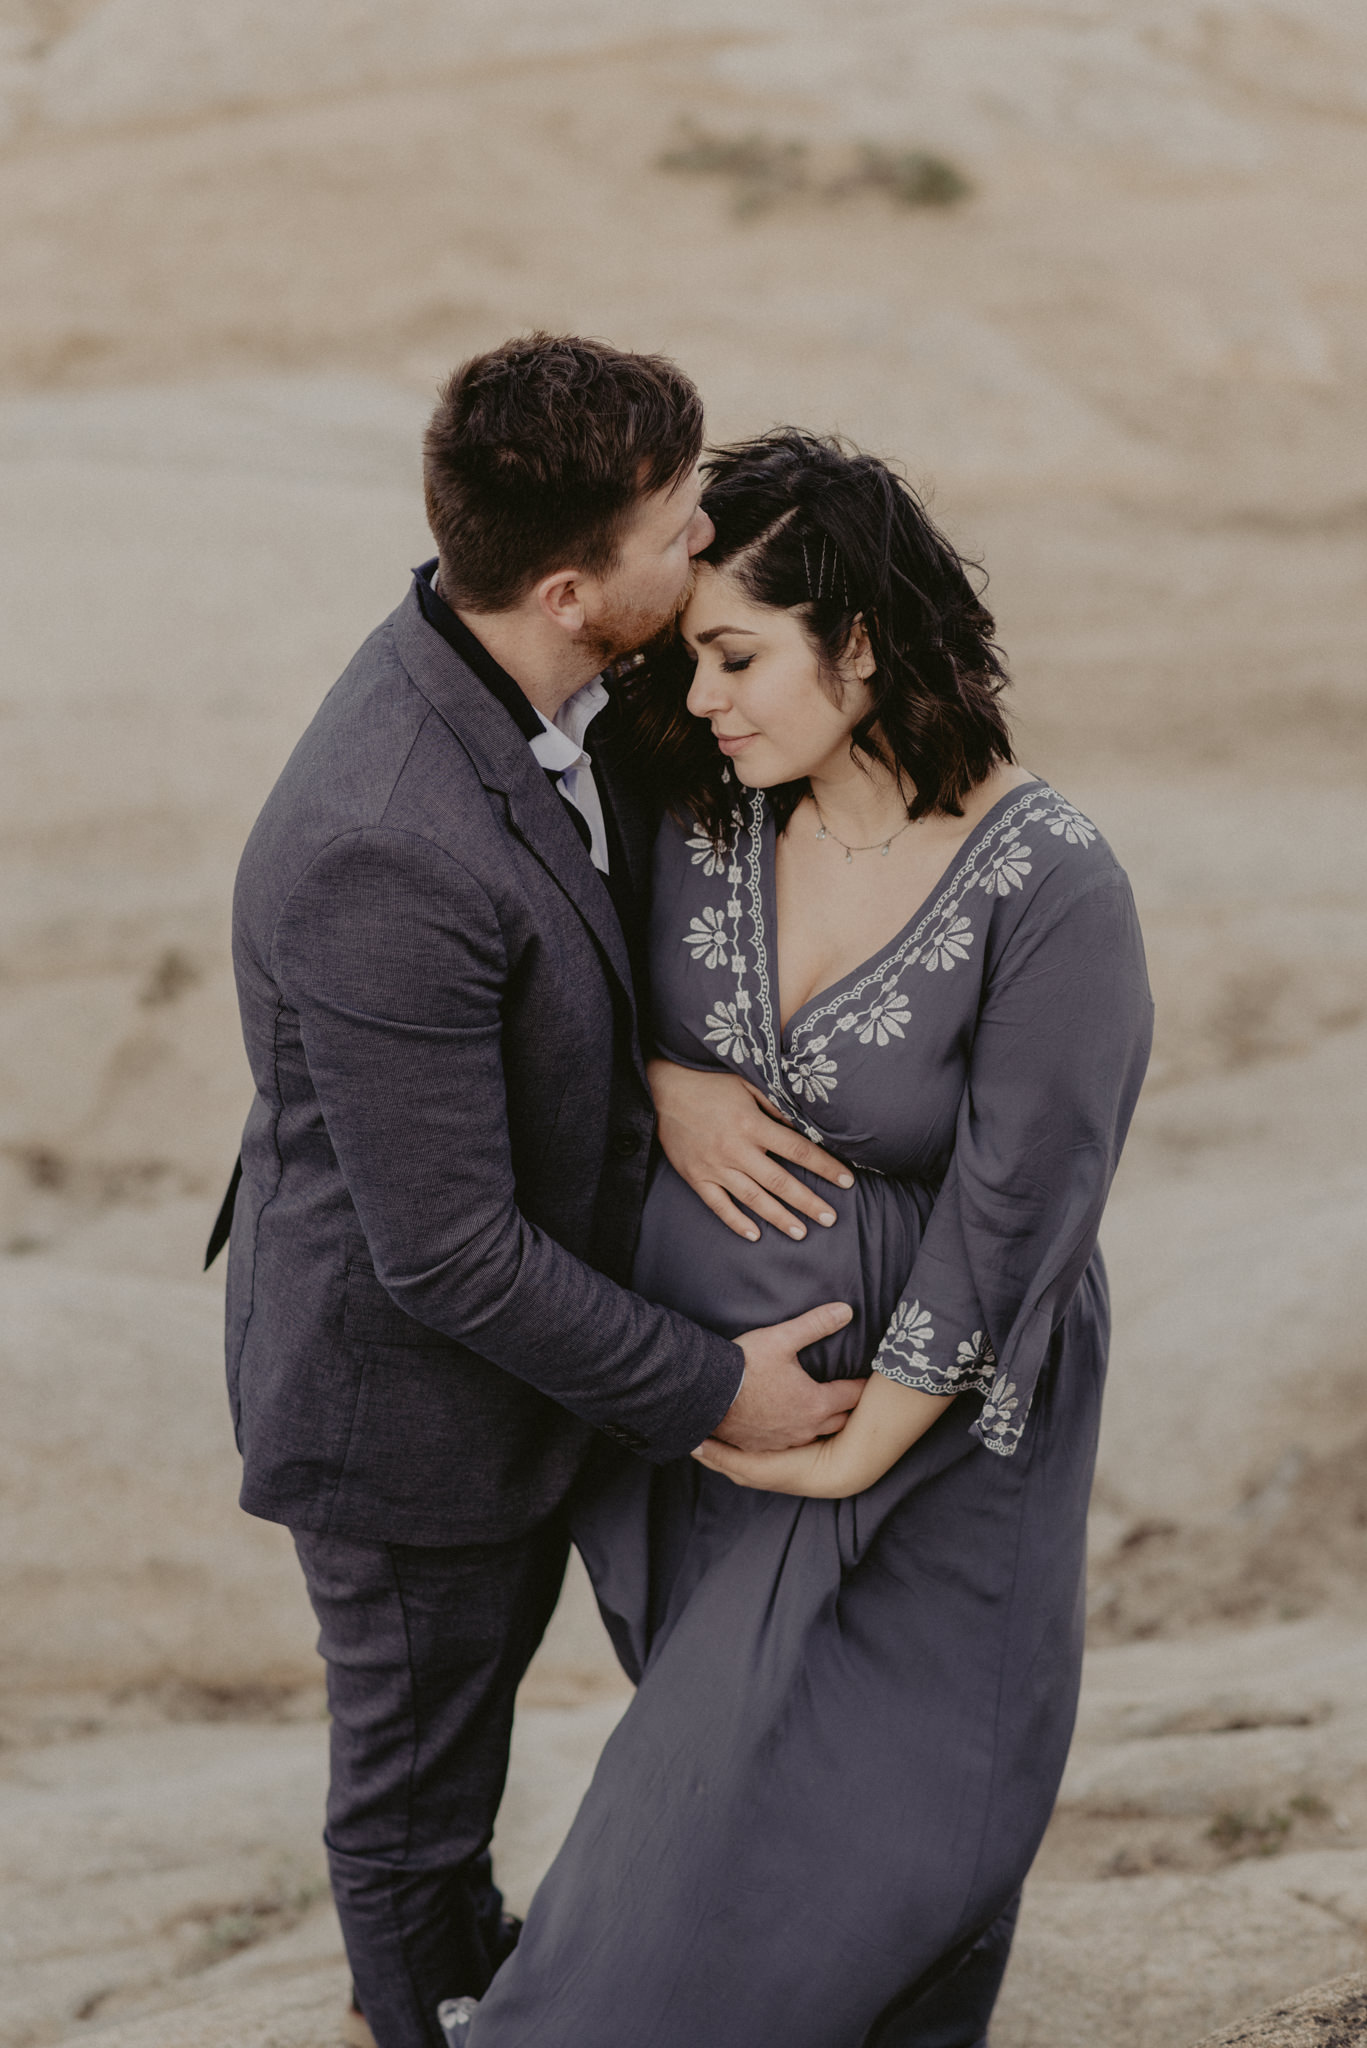 Moonrocks Nevada Maternity    Maternity